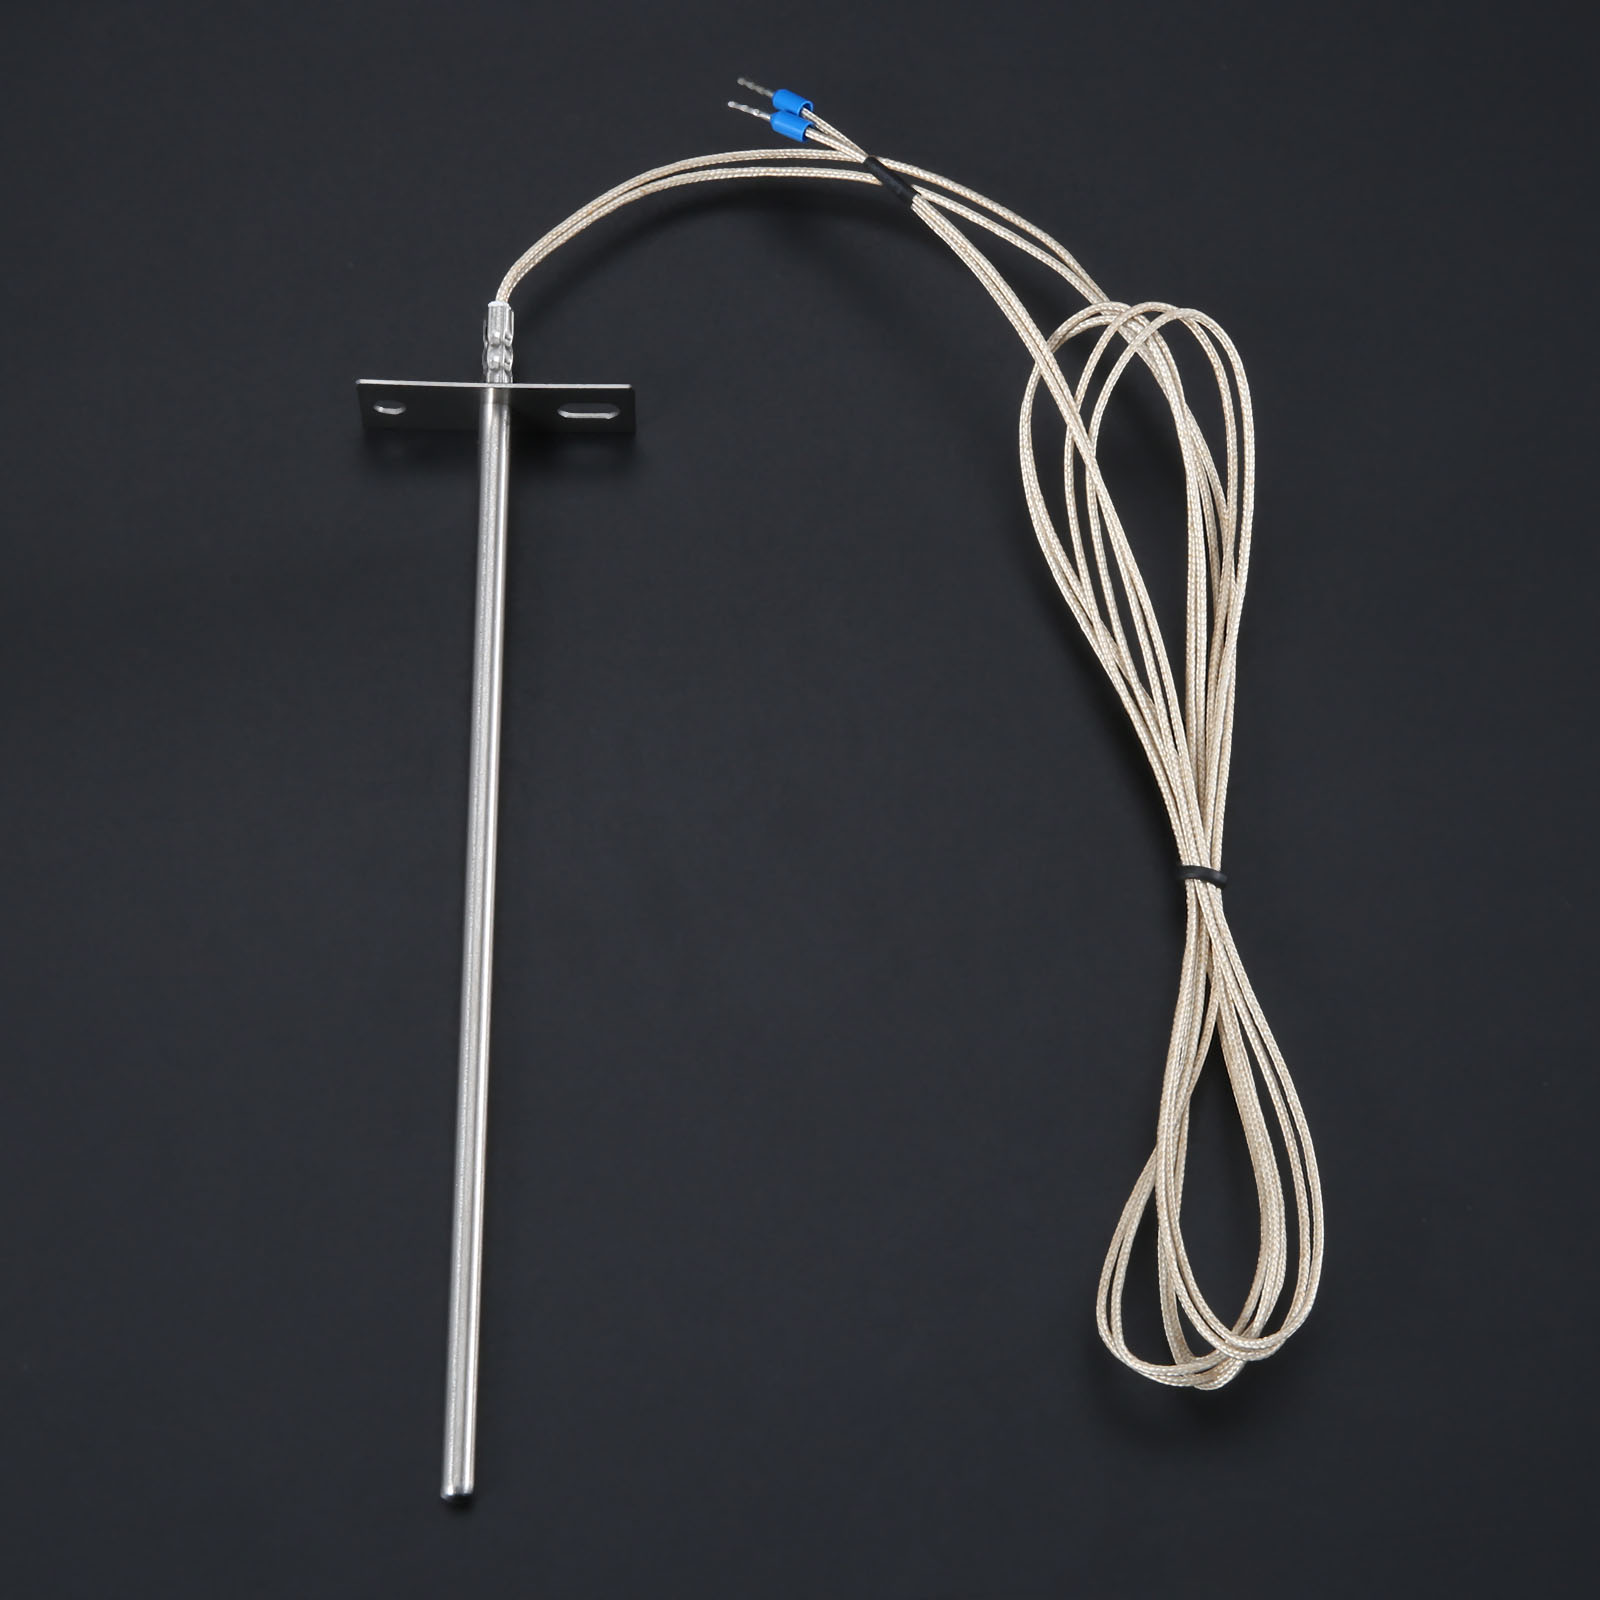 Replacement Temperature Probe TR-180P1200L RTD Temperature Probe Sensor Replacement Fits For Traeger Wood Pellet Grill